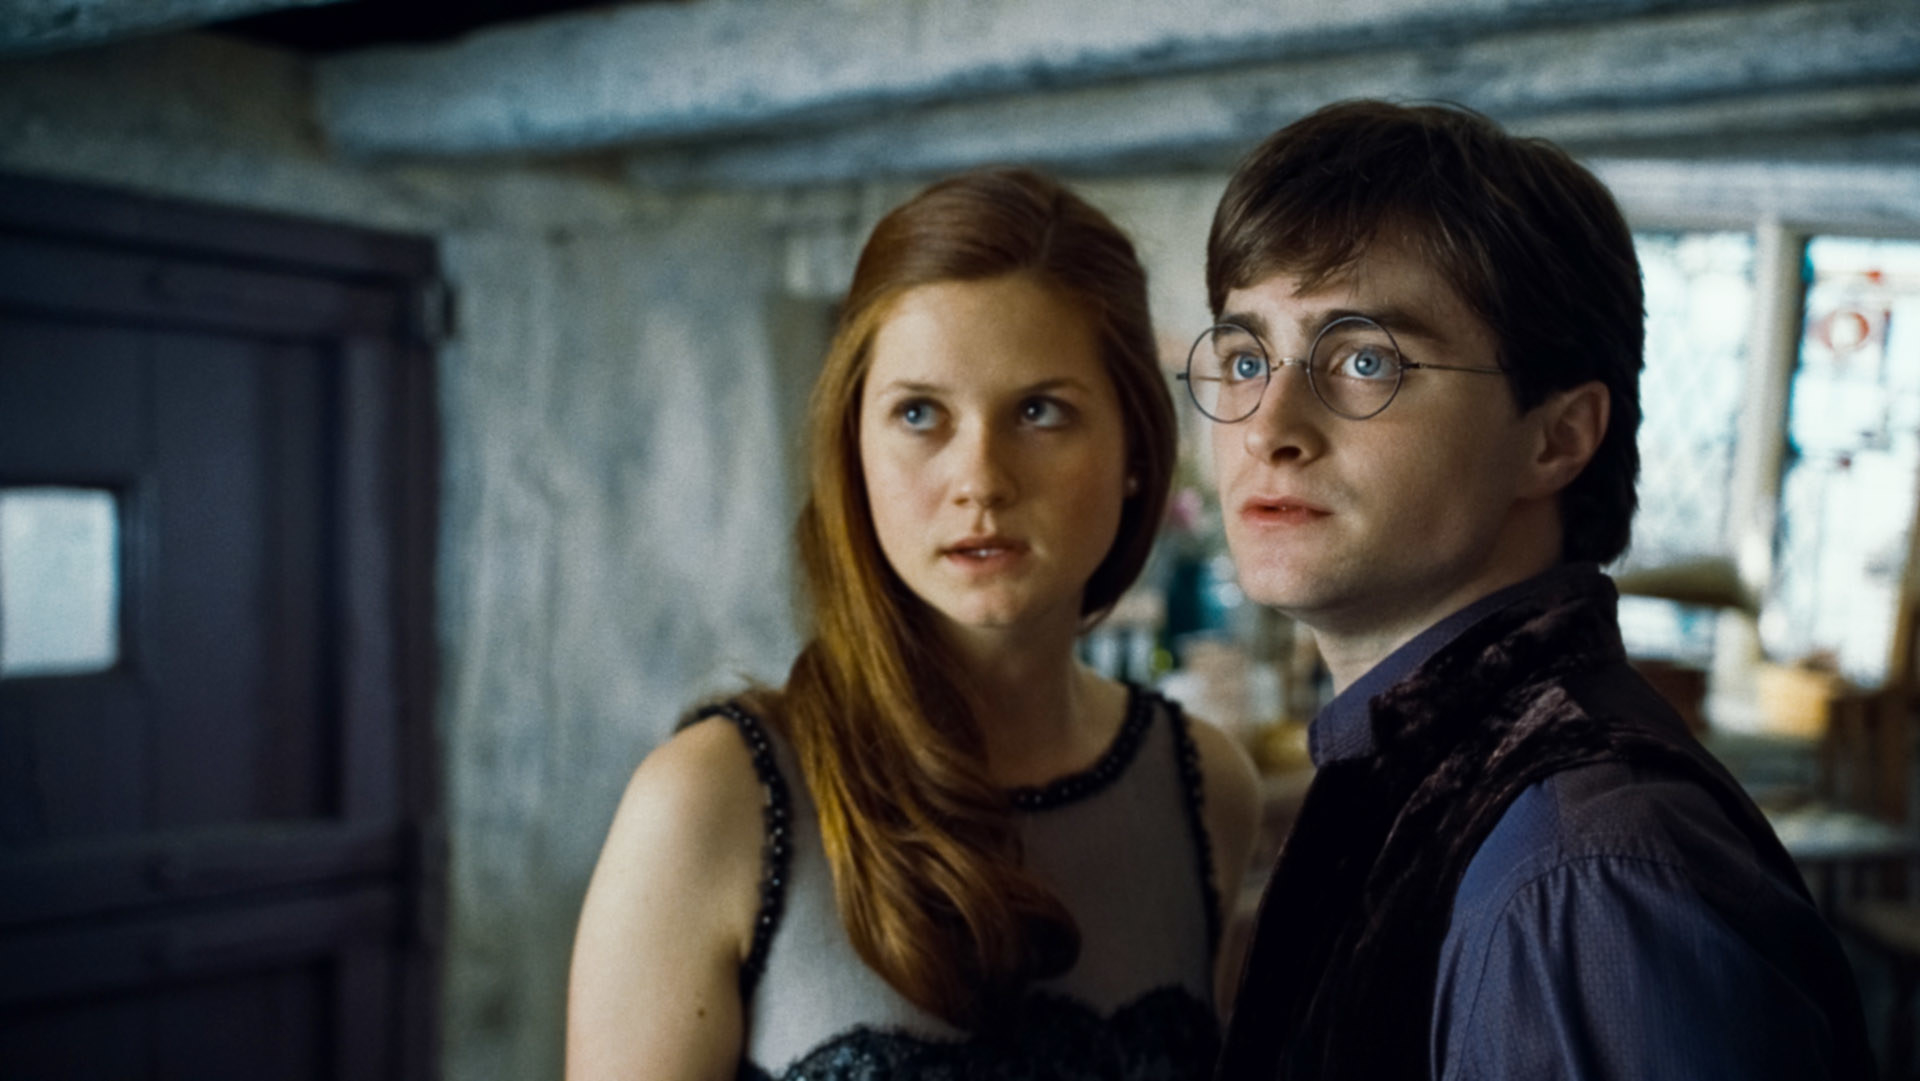 Ginny and Harry standing together